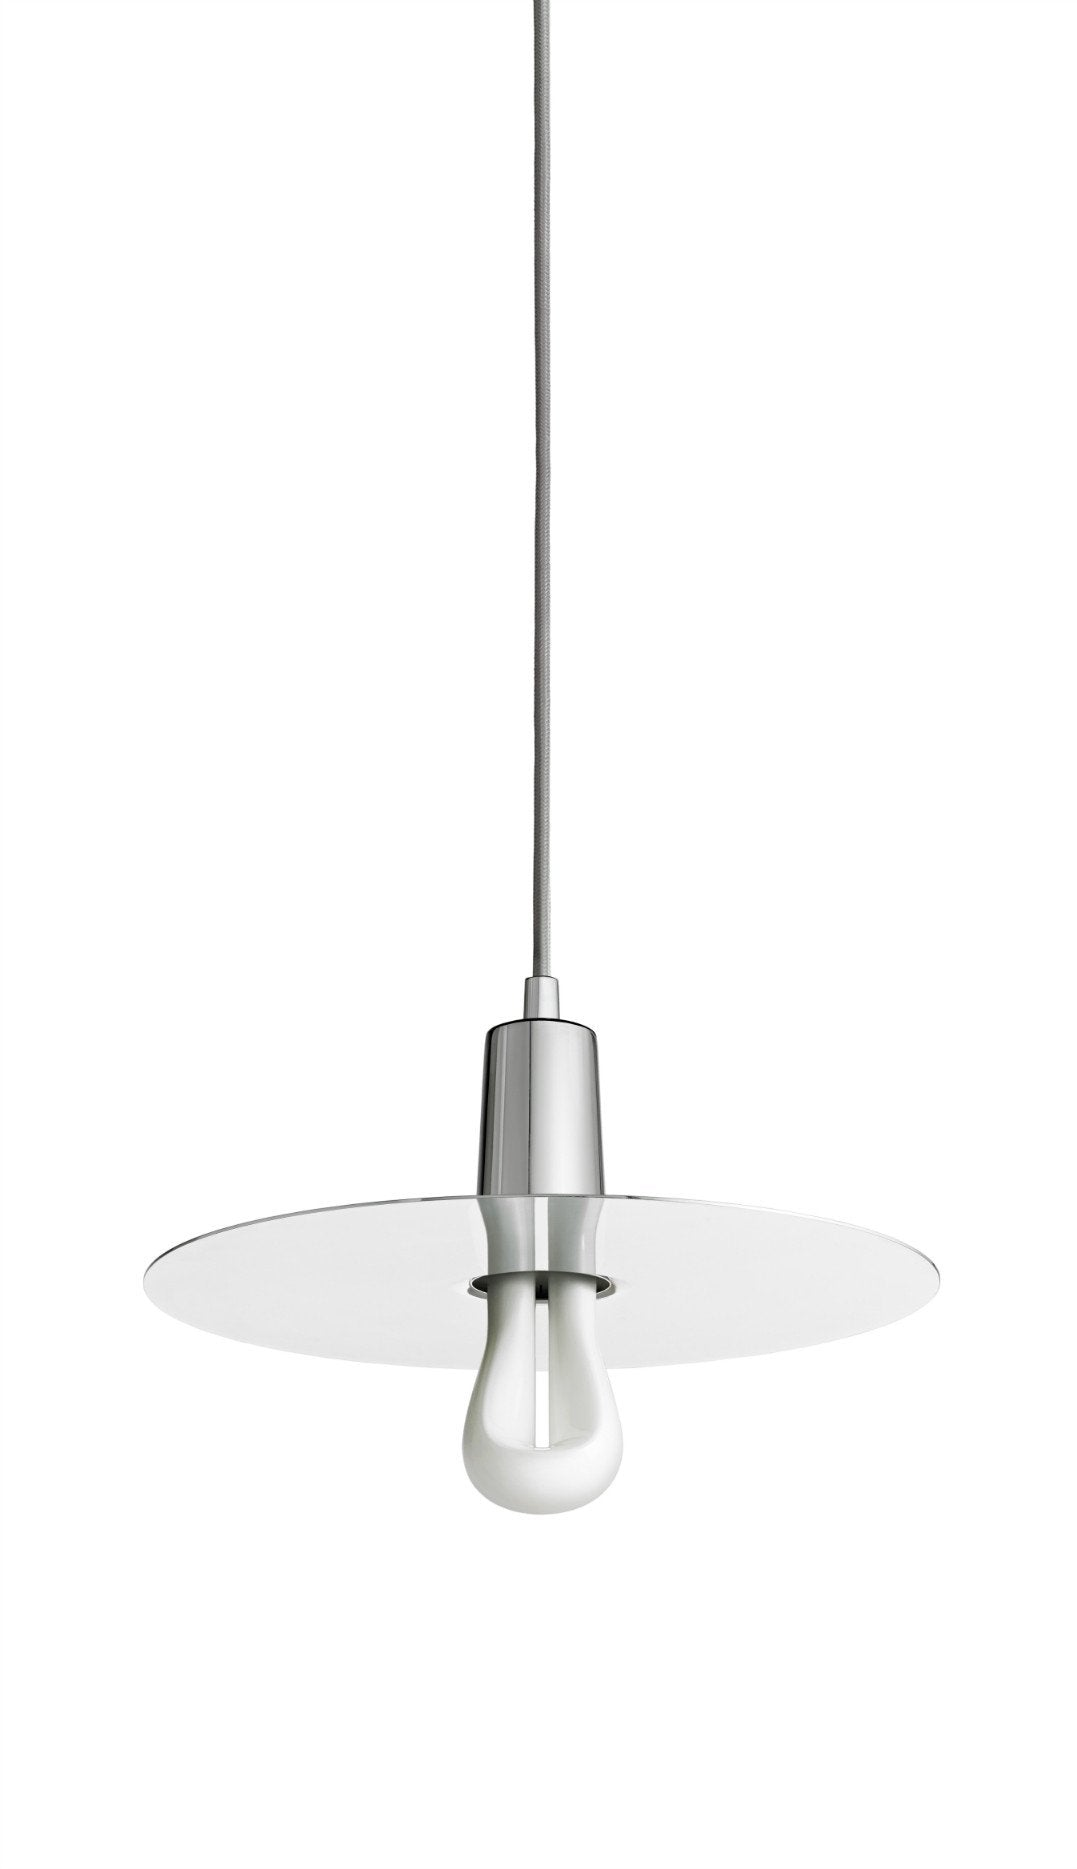 Plumen Drop Hat Lamp Shade (NEW!) - Lamp Shades - Plumen - Naiise